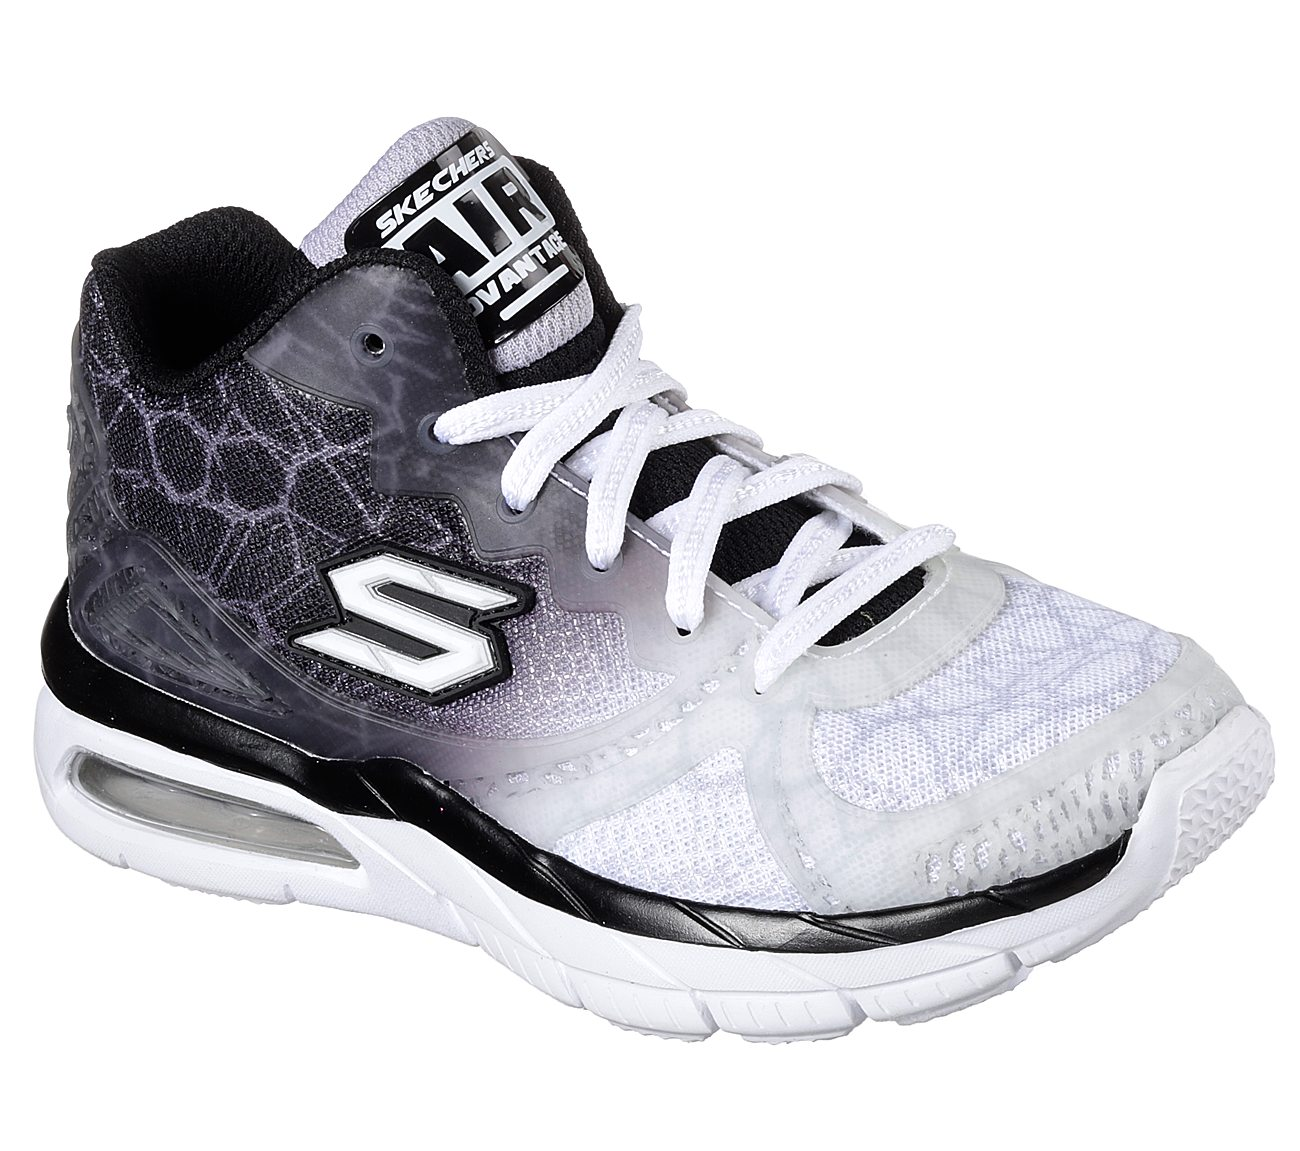 acfd22eccd59 Buy SKECHERS Air Advantage - Power Merge Skech-Air Shoes only  55.00